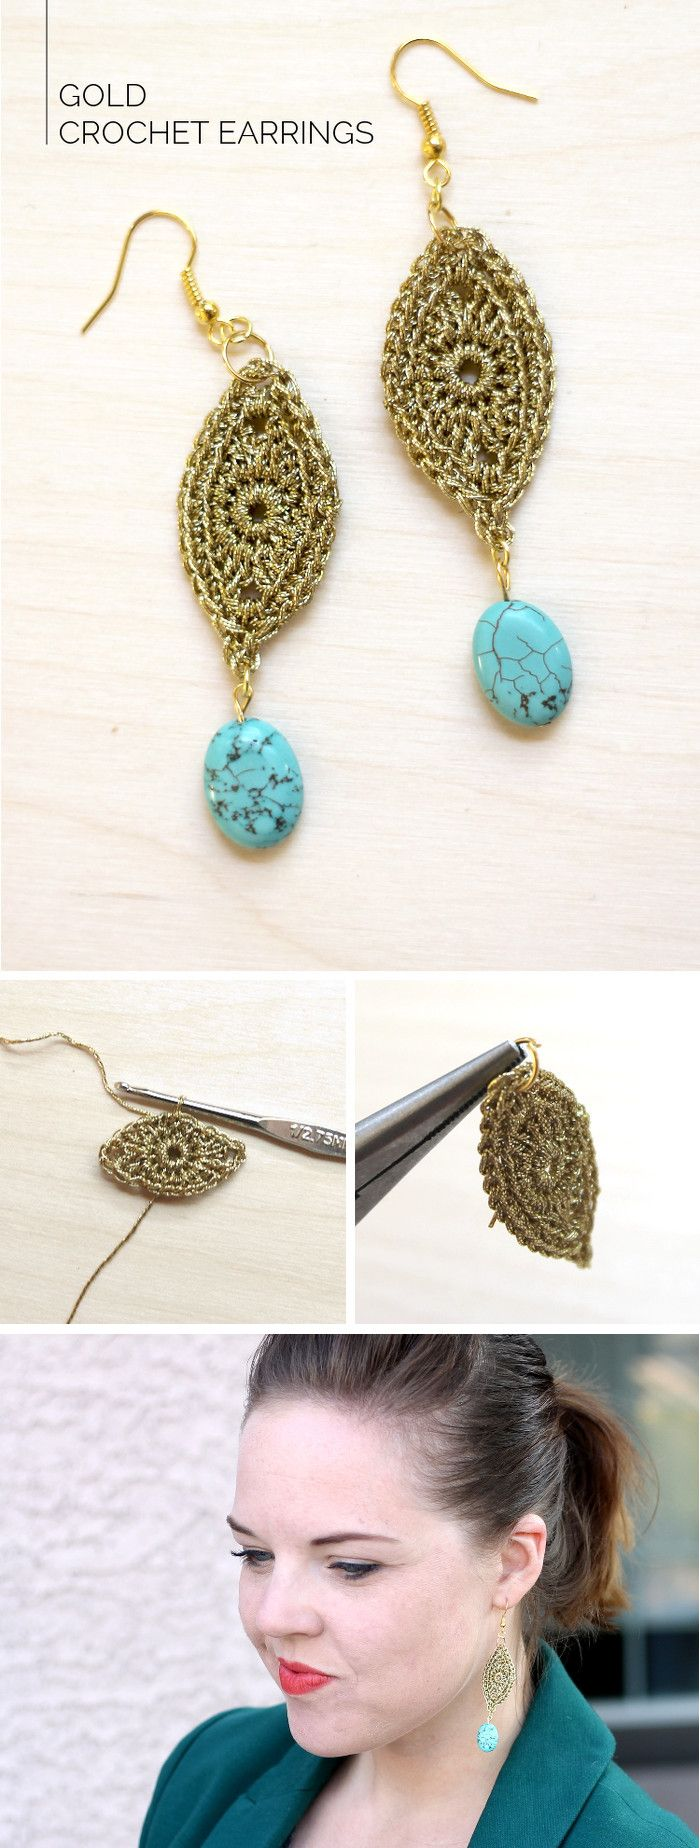 Would you believe these earrings are crocheted?! Get the full tutorial at persialou.com ༺✿ƬⱤღ https://www.pinterest.com/teretegui/✿༻